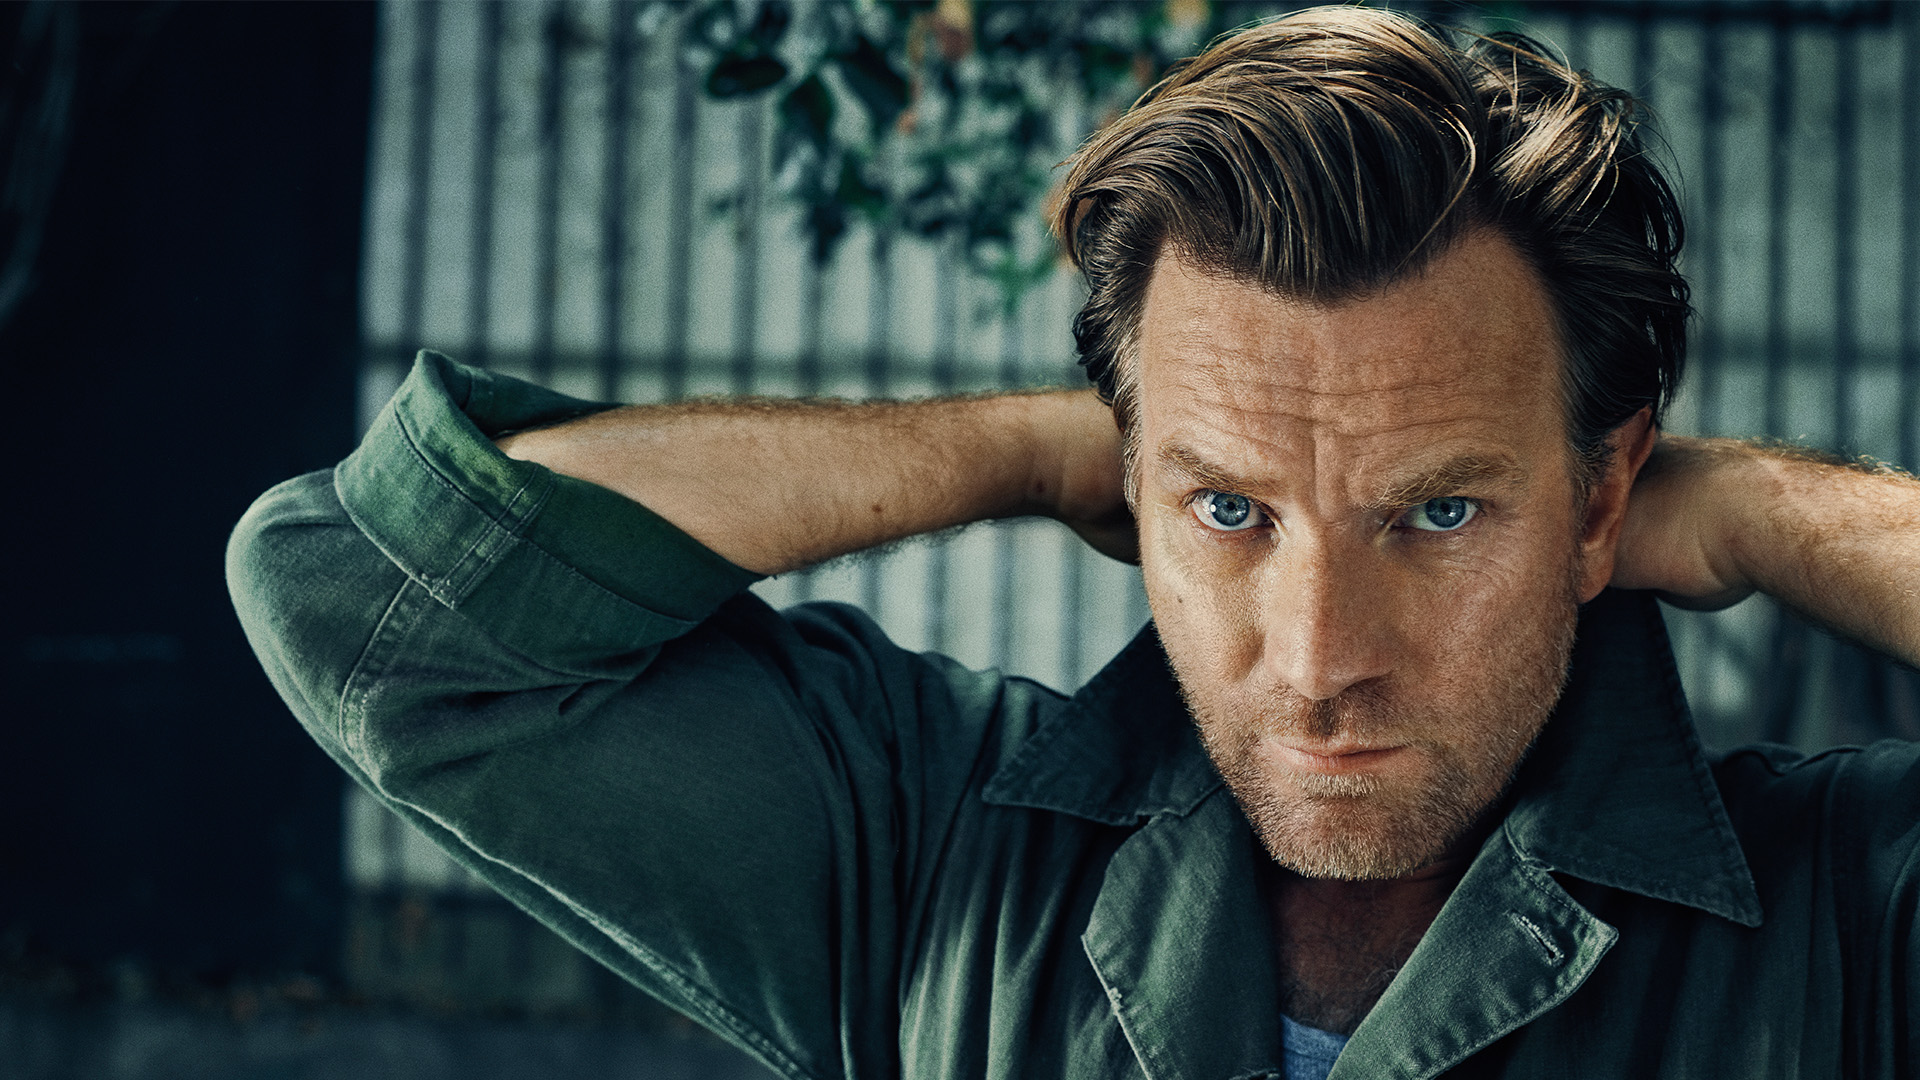 How to Ask Your Barber for Ewan McGregor's Haircut